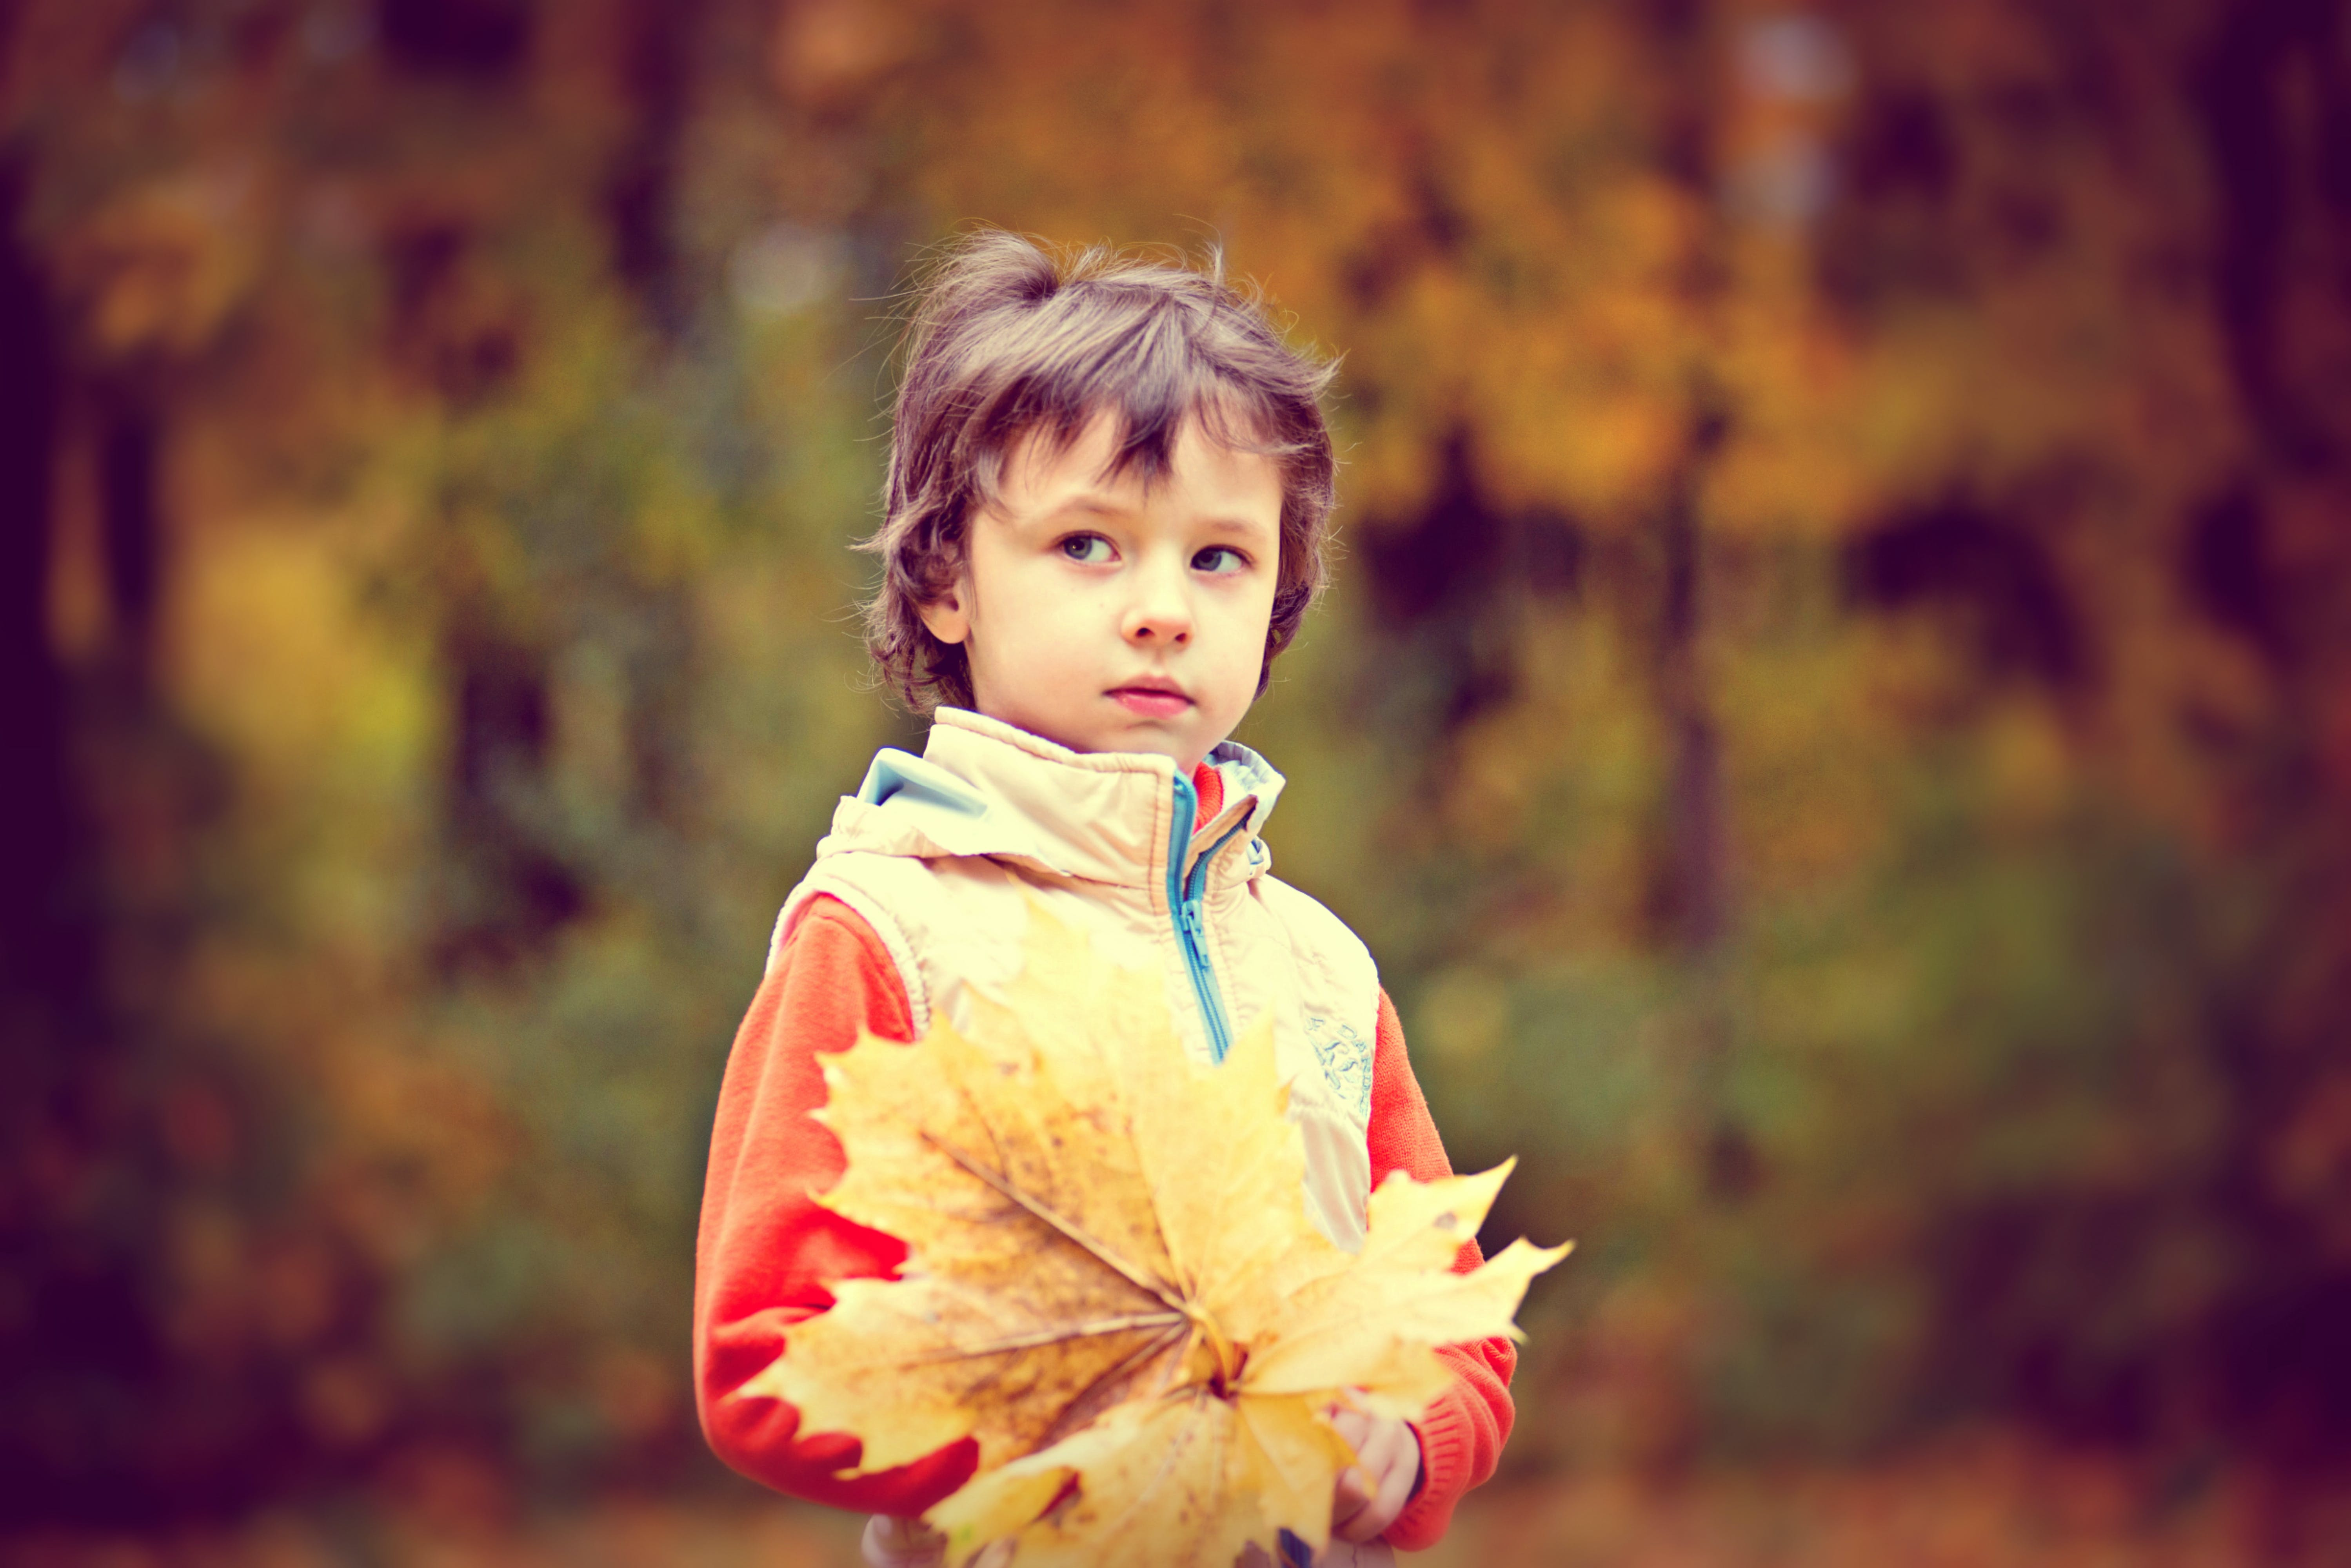 Boy Wearing White and Red Zip Jacket Holding Brown Maple Leaf